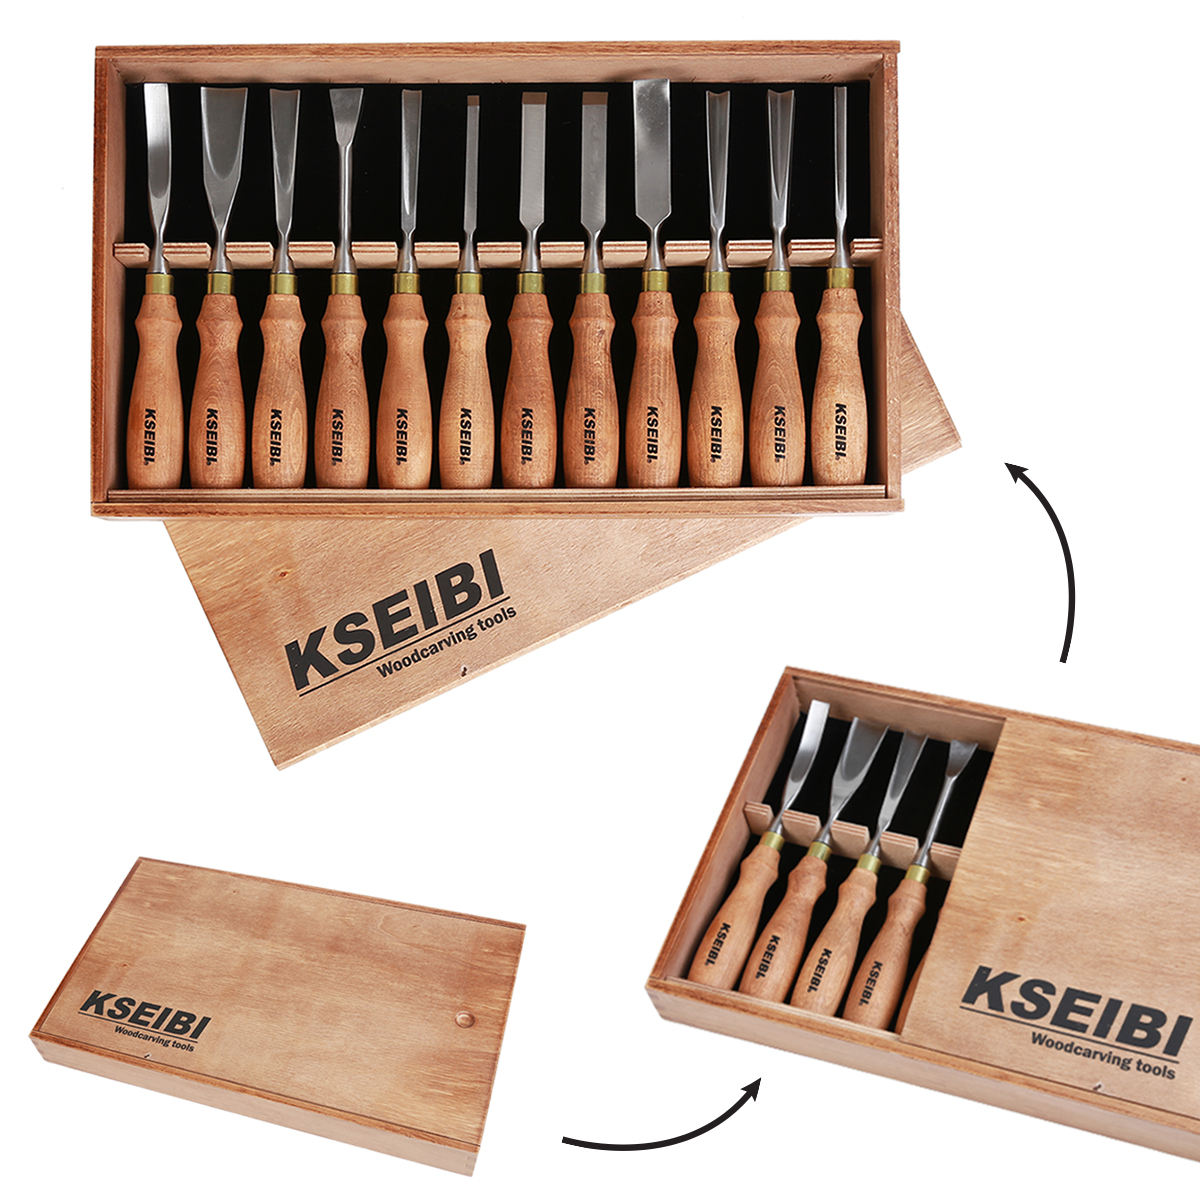 KSEIBI 312141 Wood Carving Tools Woodworking Kits Chisel Gouge 12 Pieces Premium Ash Wood Handle In Wooden Box